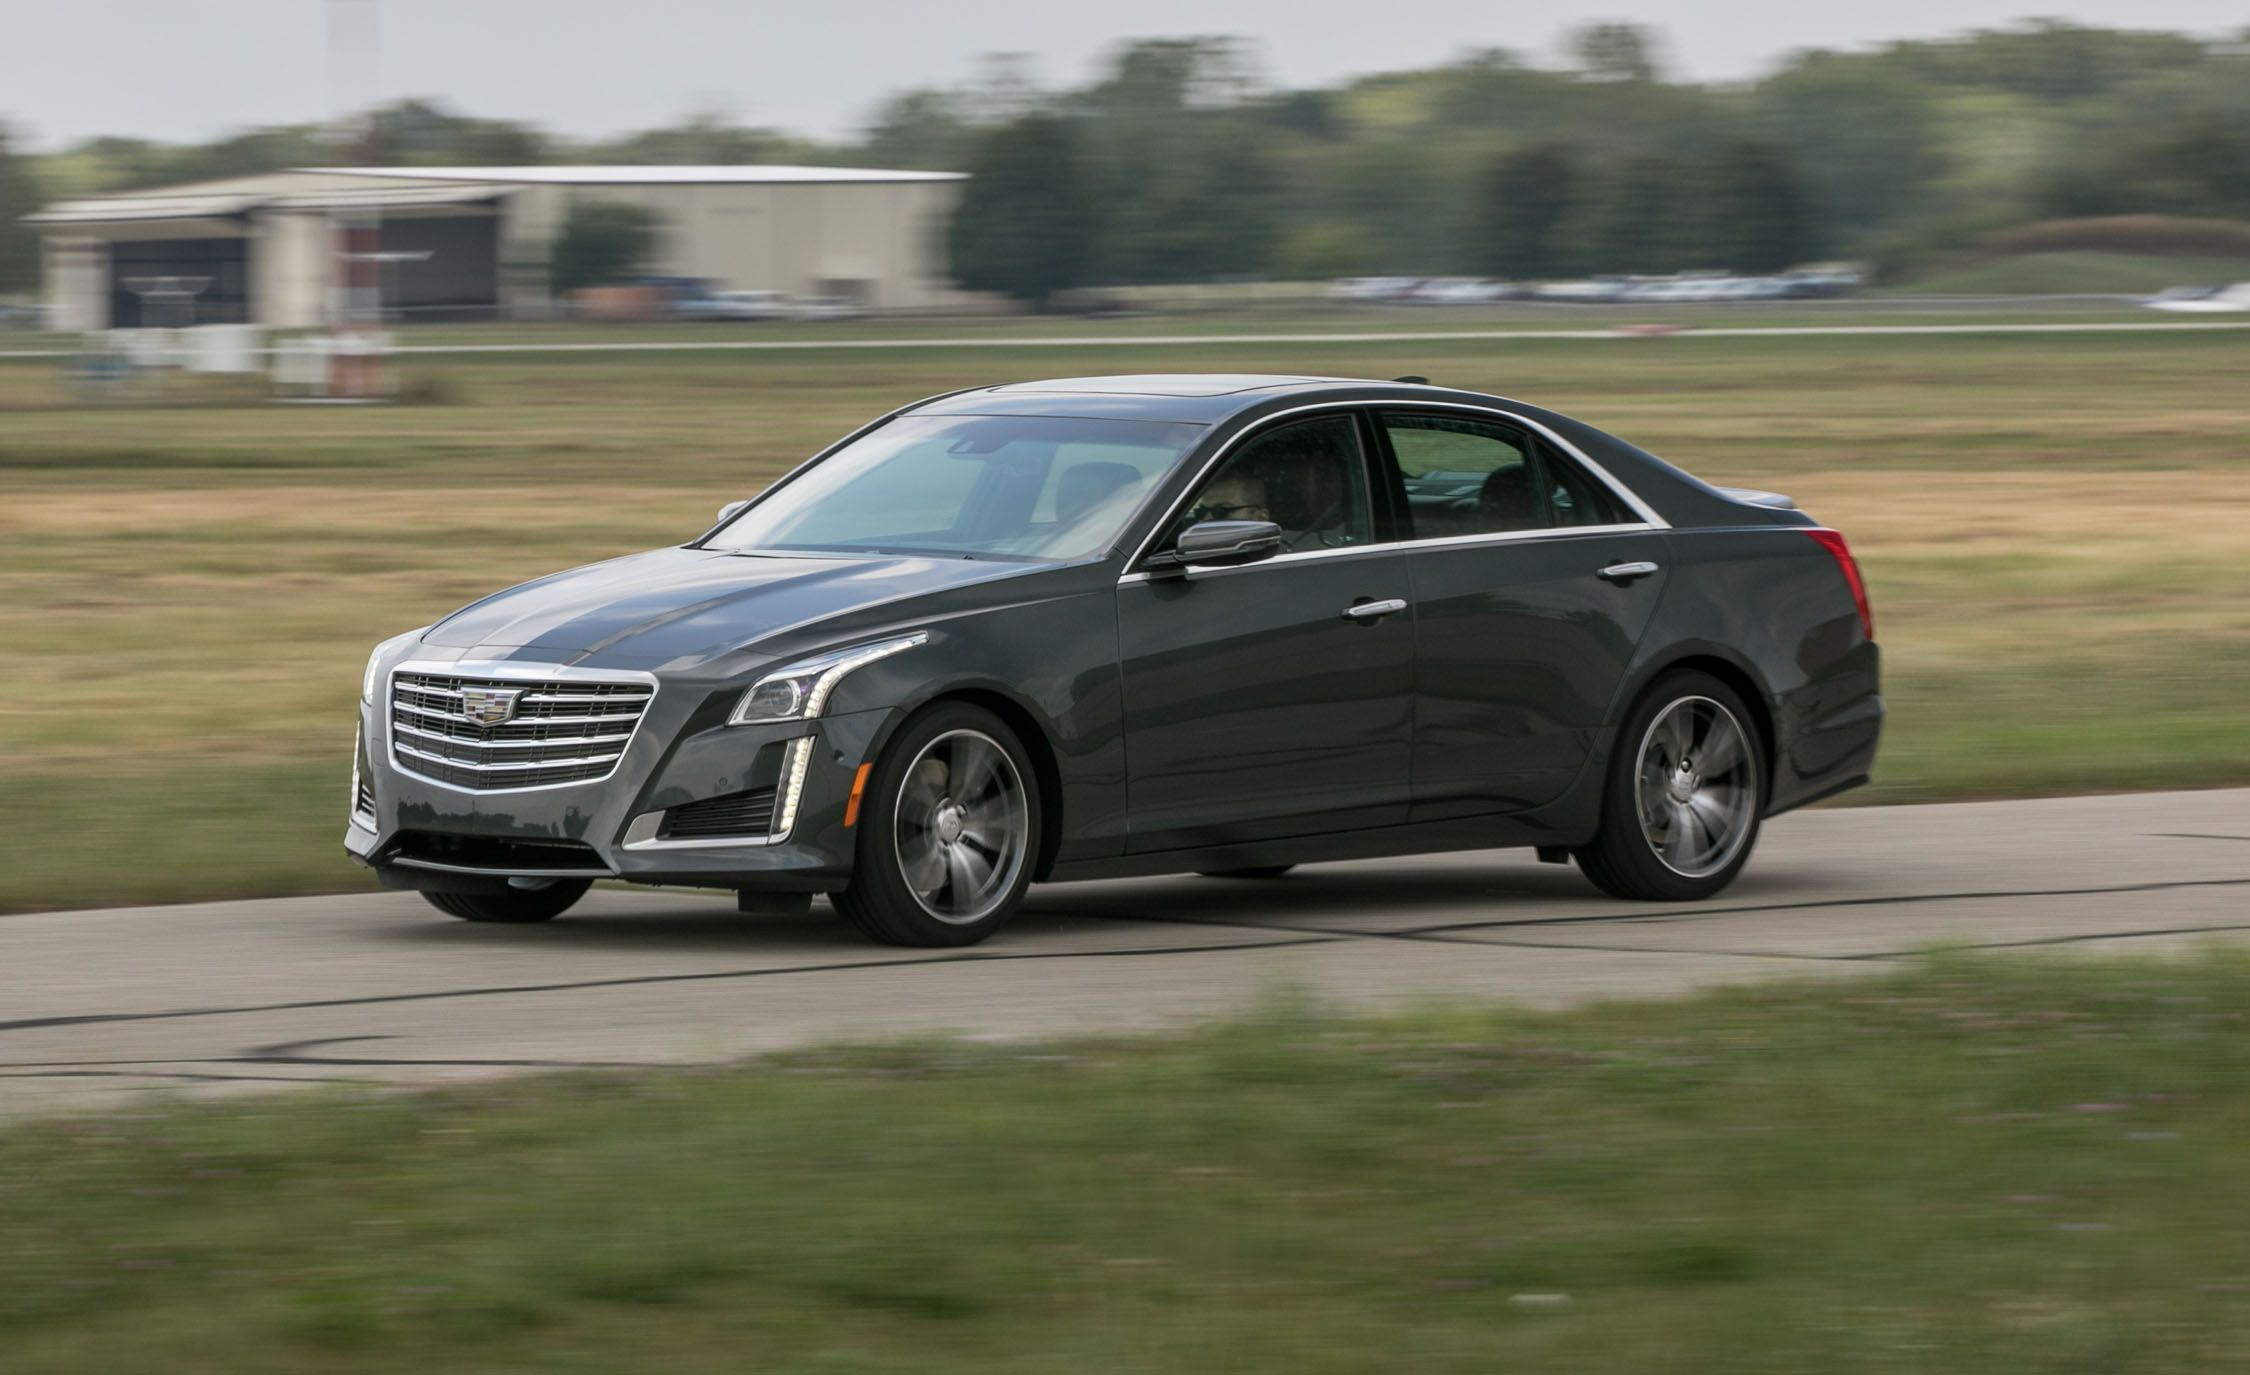 2016 cadillac cts 3.6 review